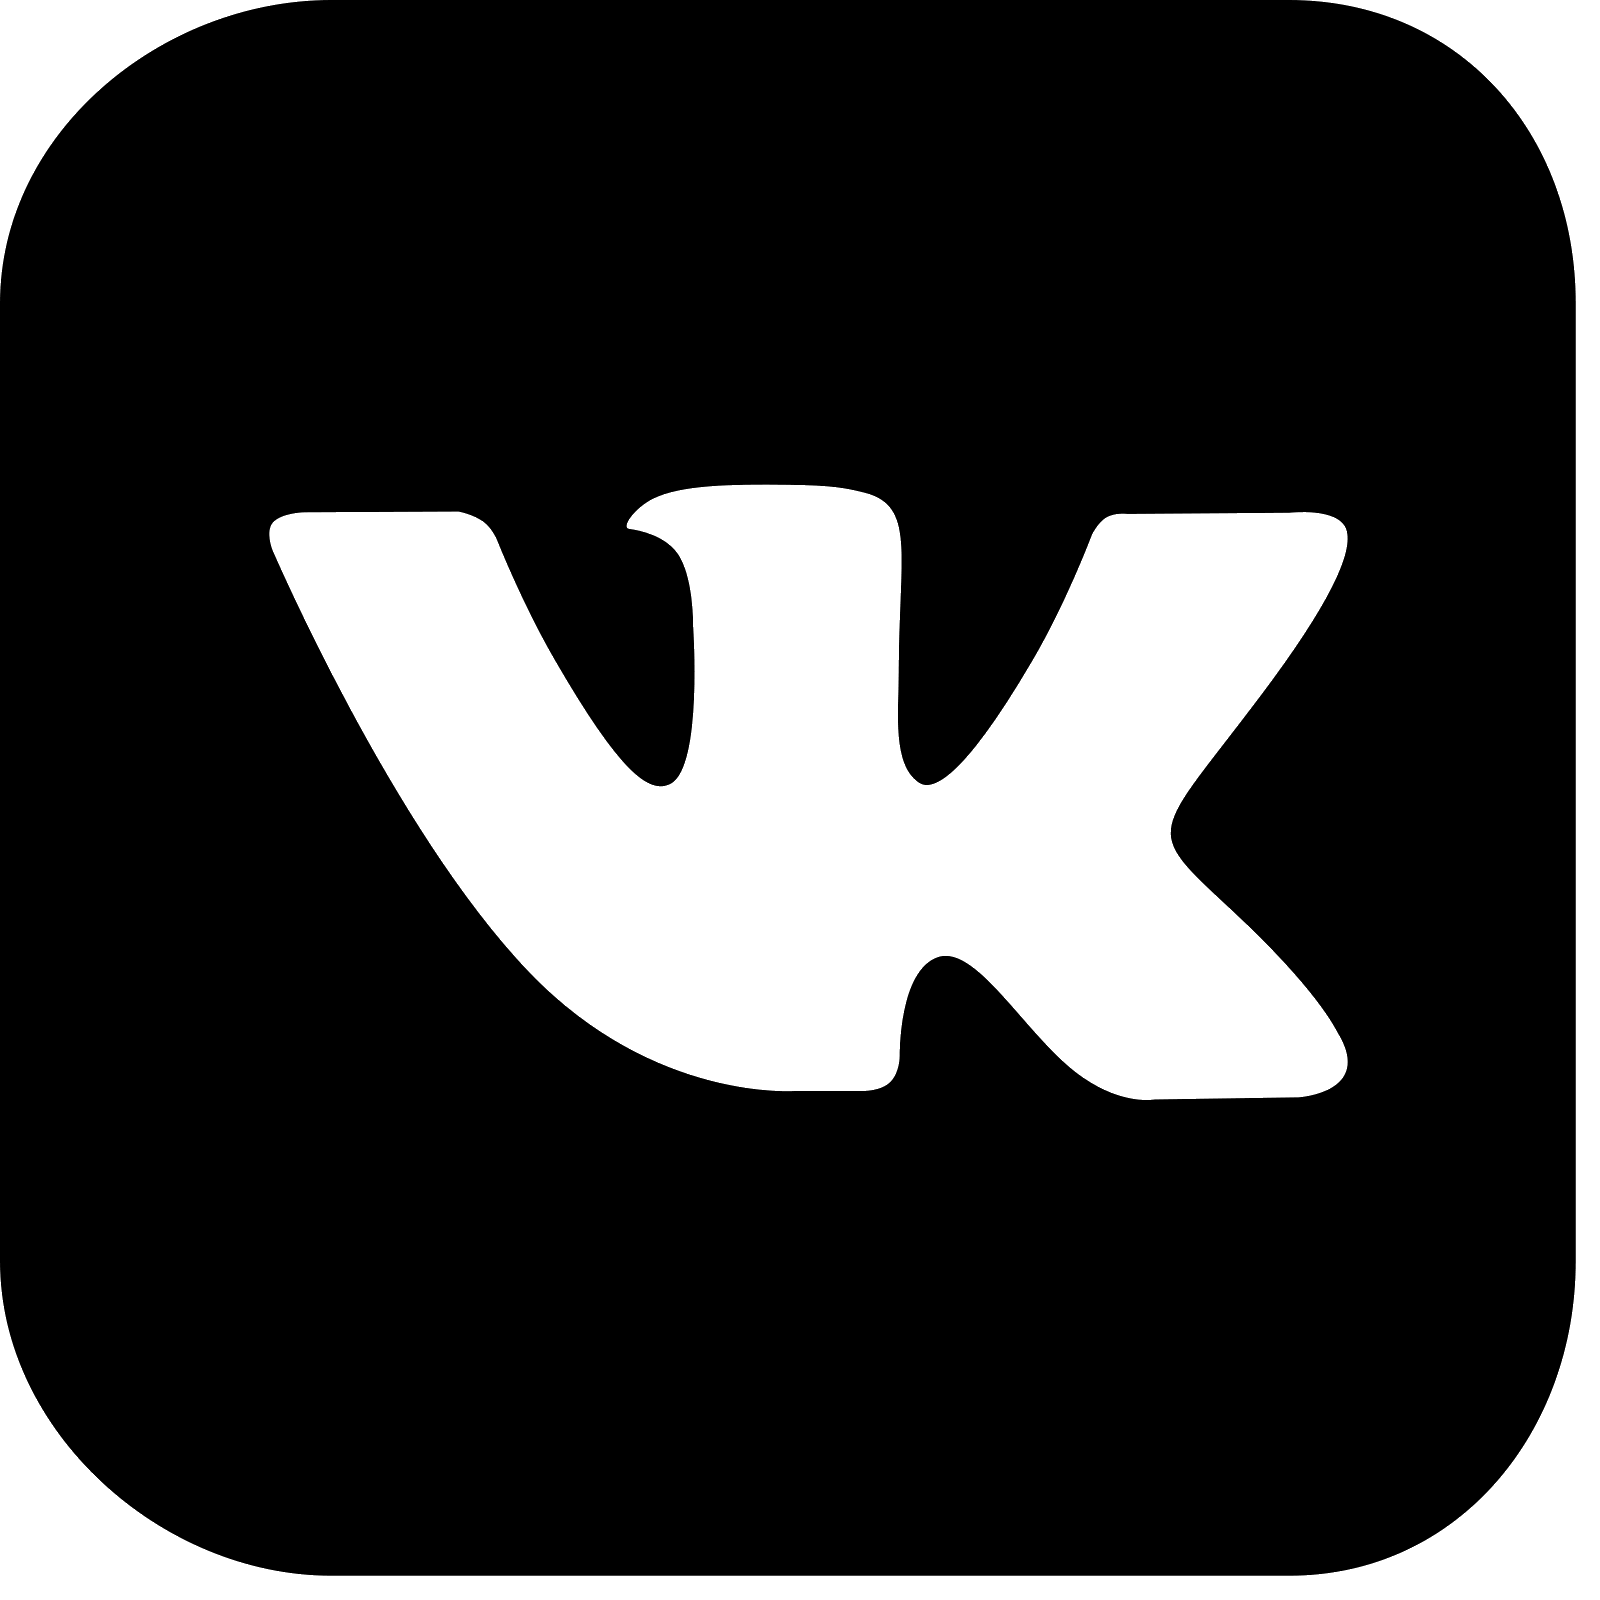 Vk Icon Png #122332.